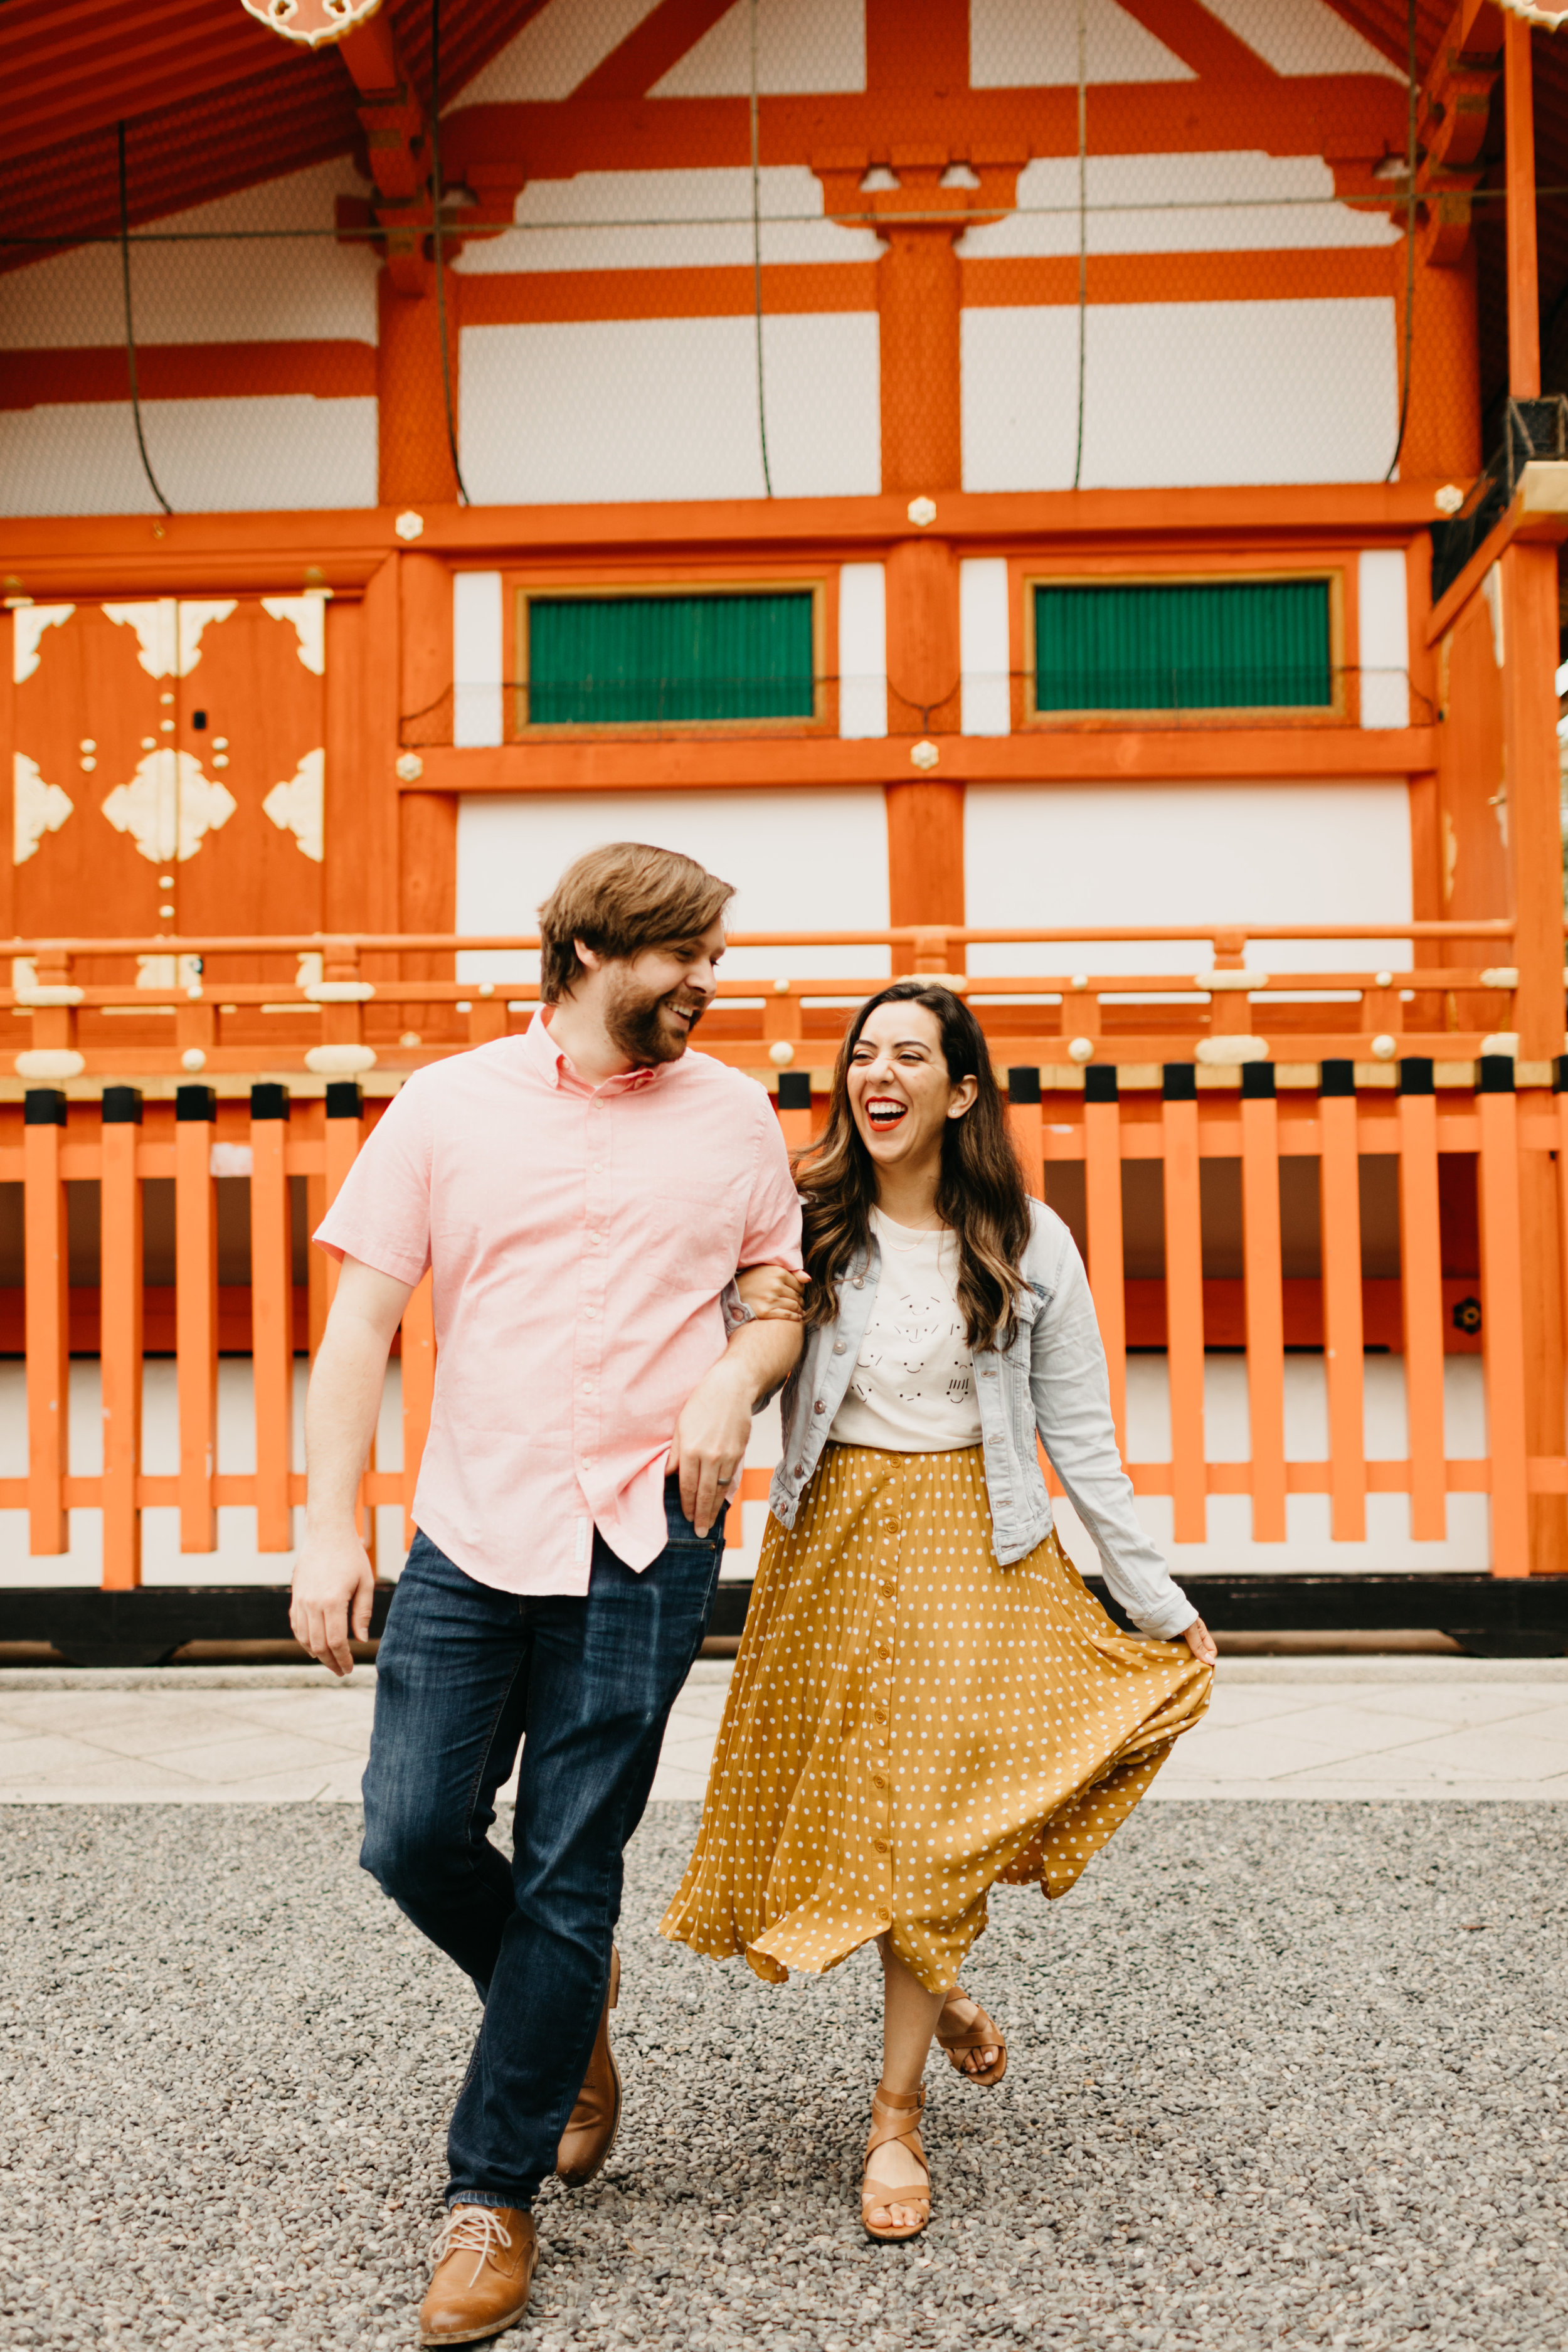 fushimi_inari_shrine_kyoto_couples_session_pictures_by_samantha_look-12.jpg